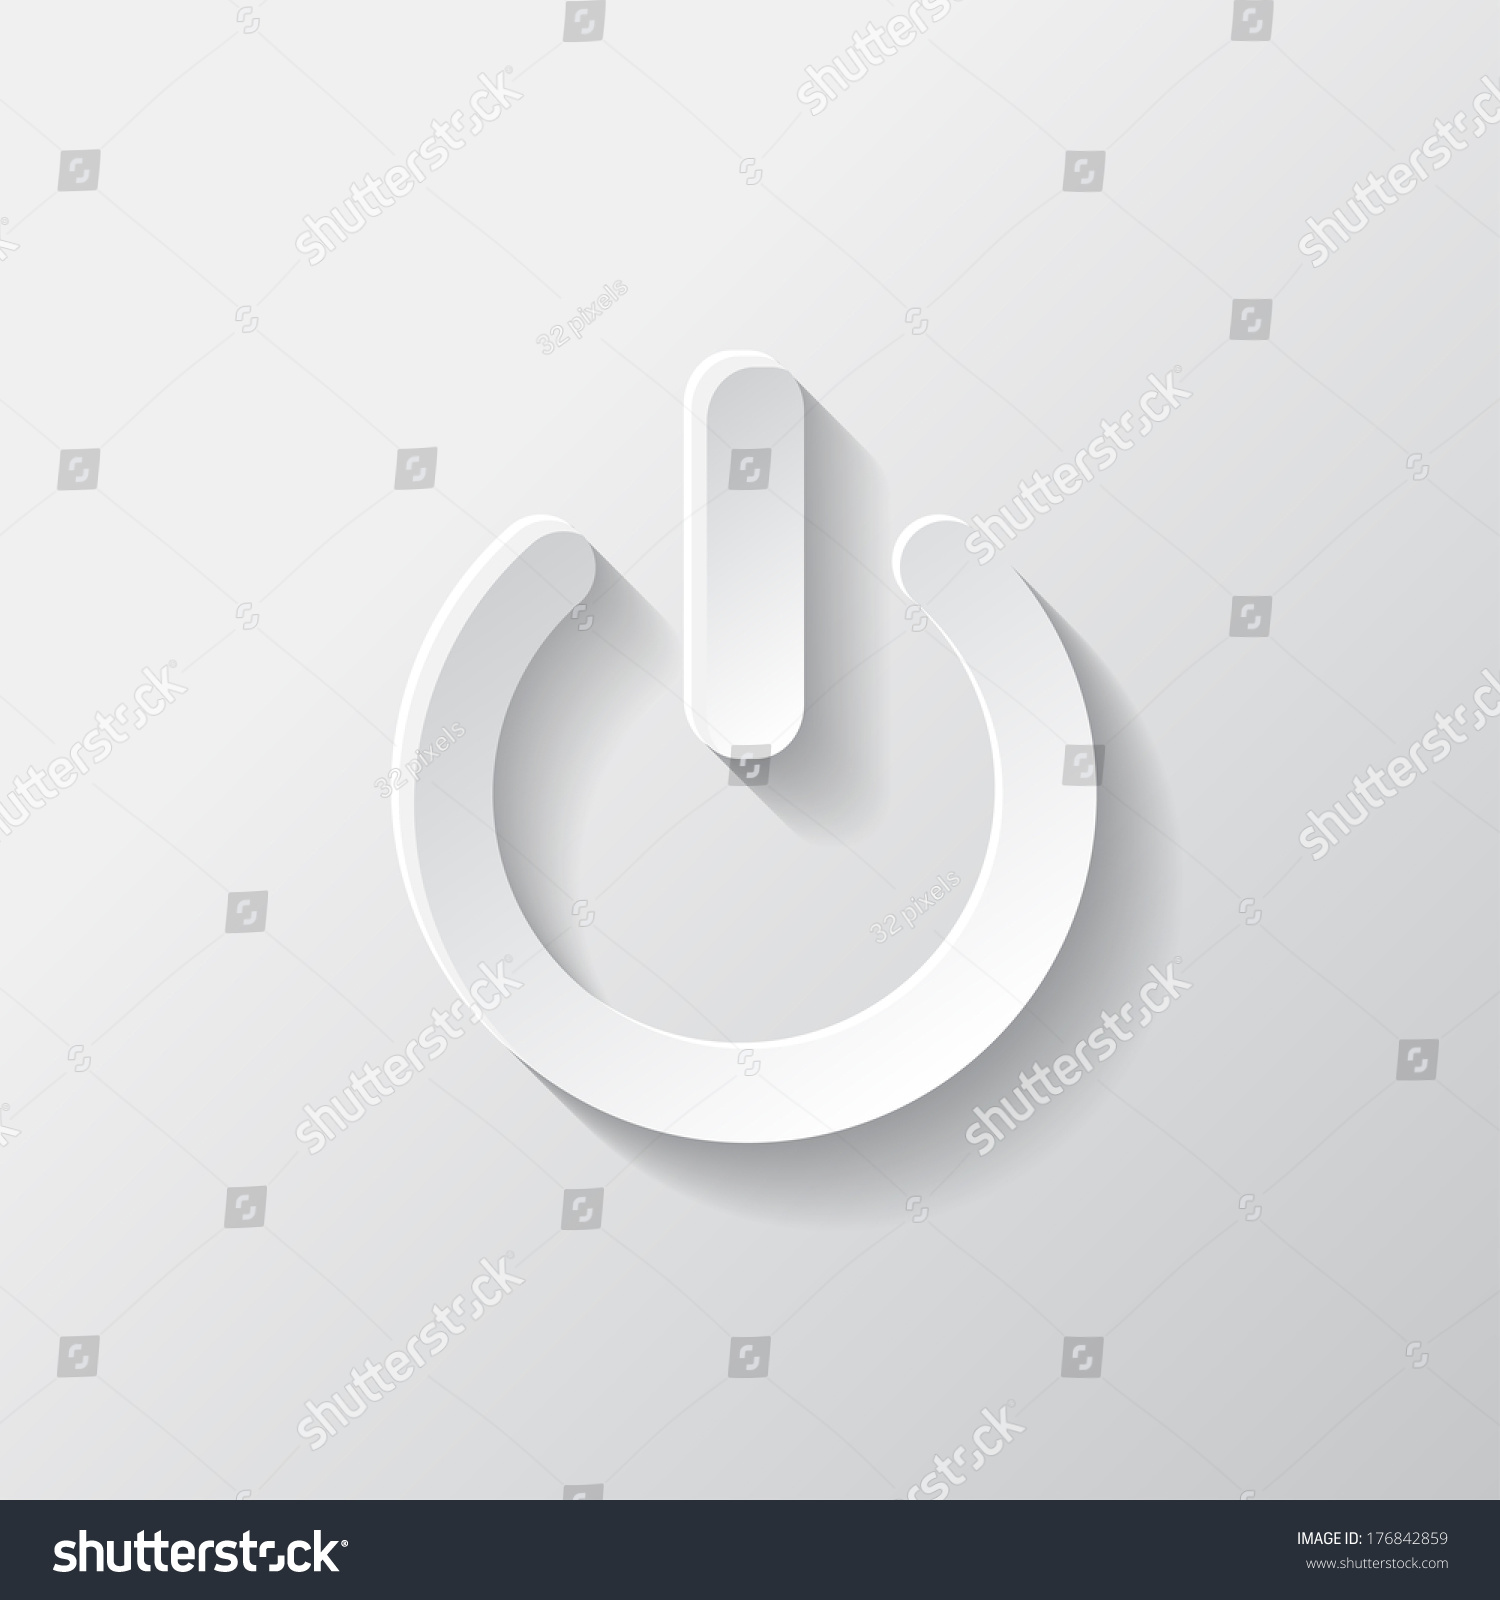 Off and on switch symbols mechanical dewatering diagram landscape best electrical switch symbols on off ideas electrical circuit stock photo on off switch icon power buycottarizona Gallery